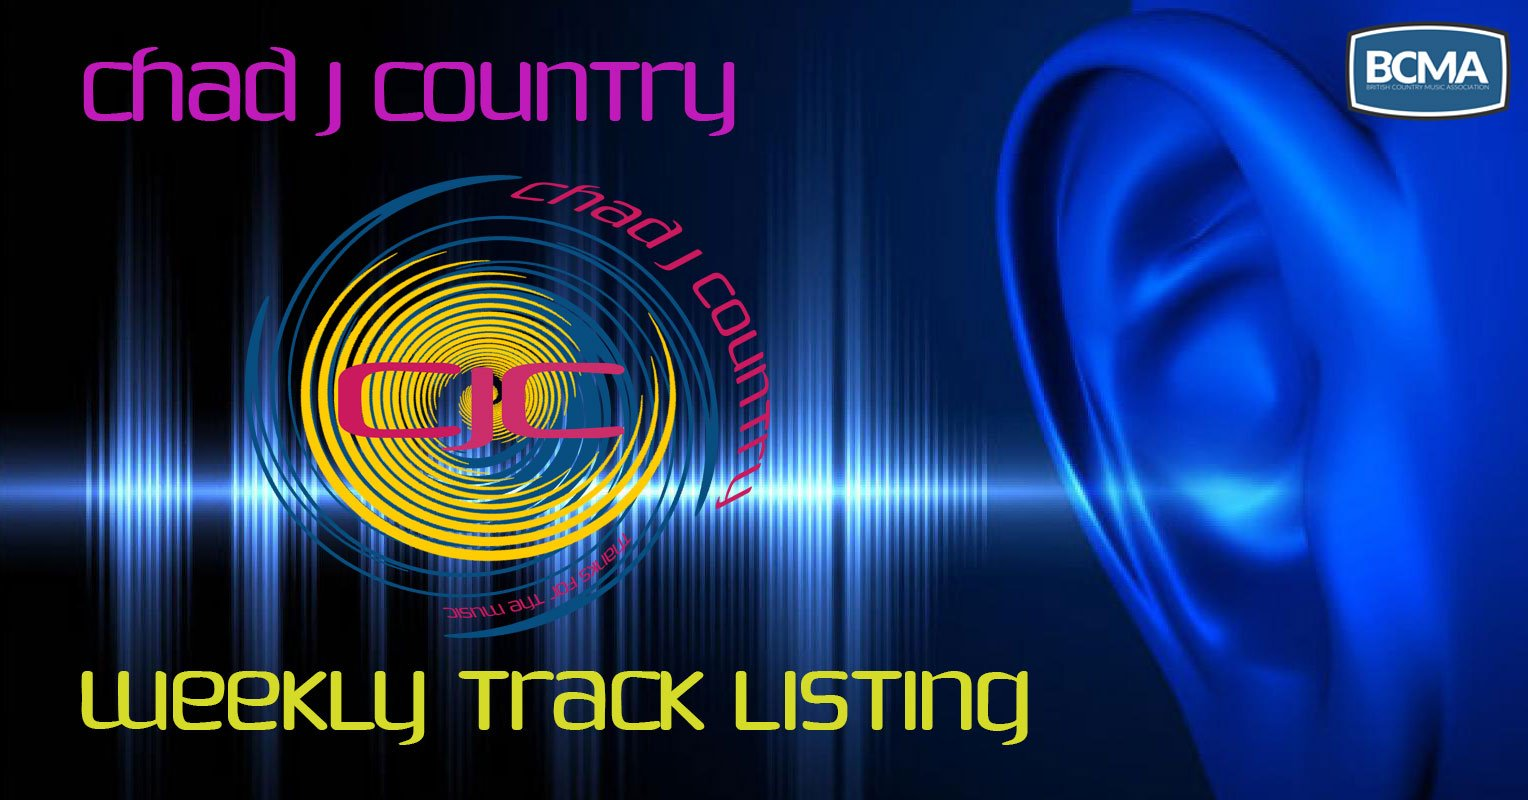 Chad J Country Track-listing